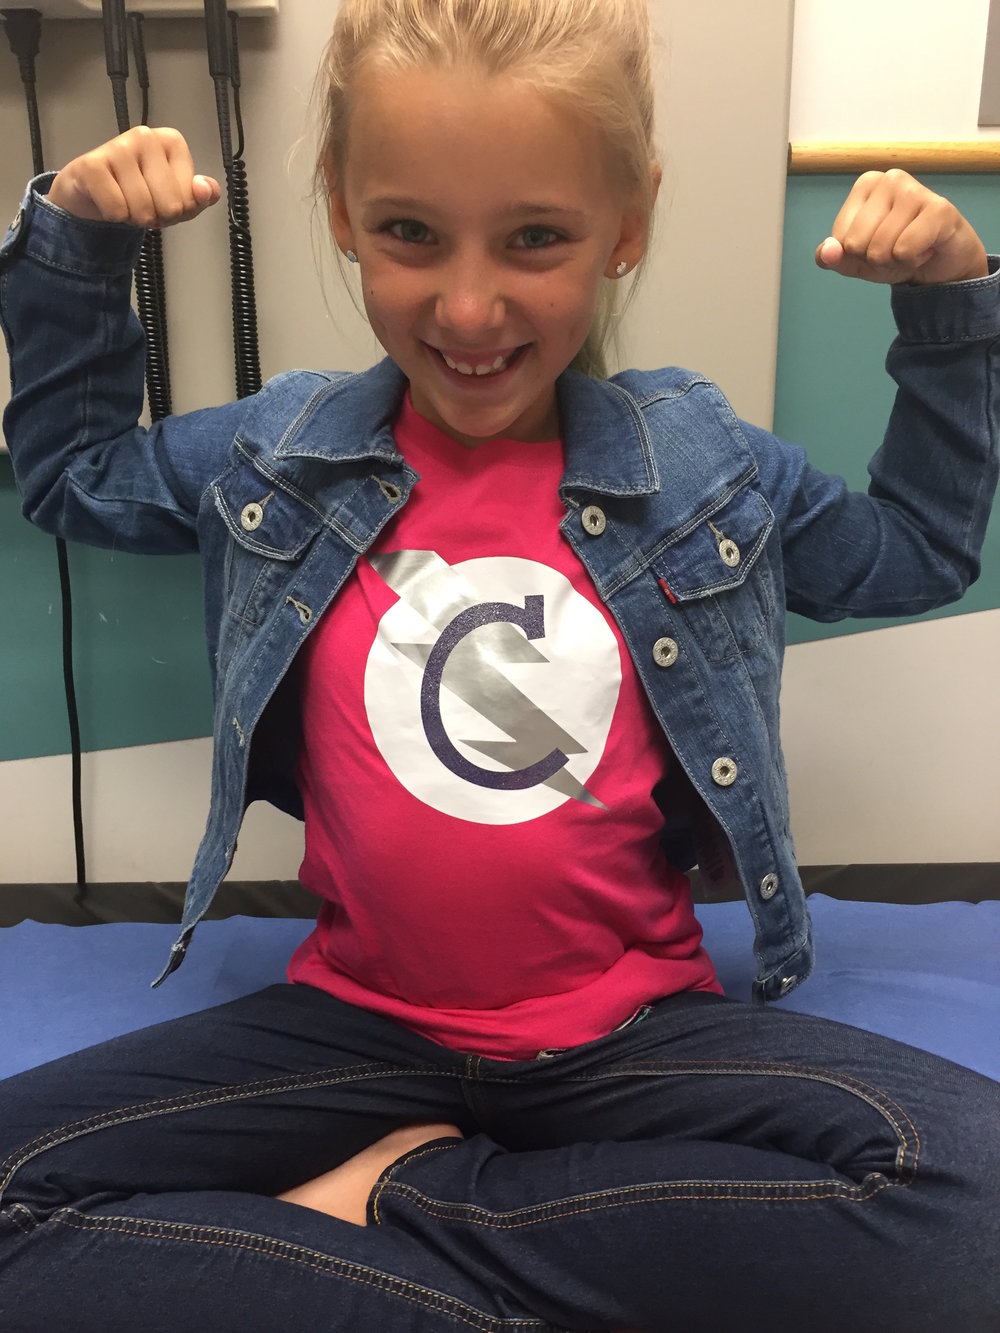 Super C at Riley Children's Hospital in Indianapolis, where we plan to only attend check ups from here on!